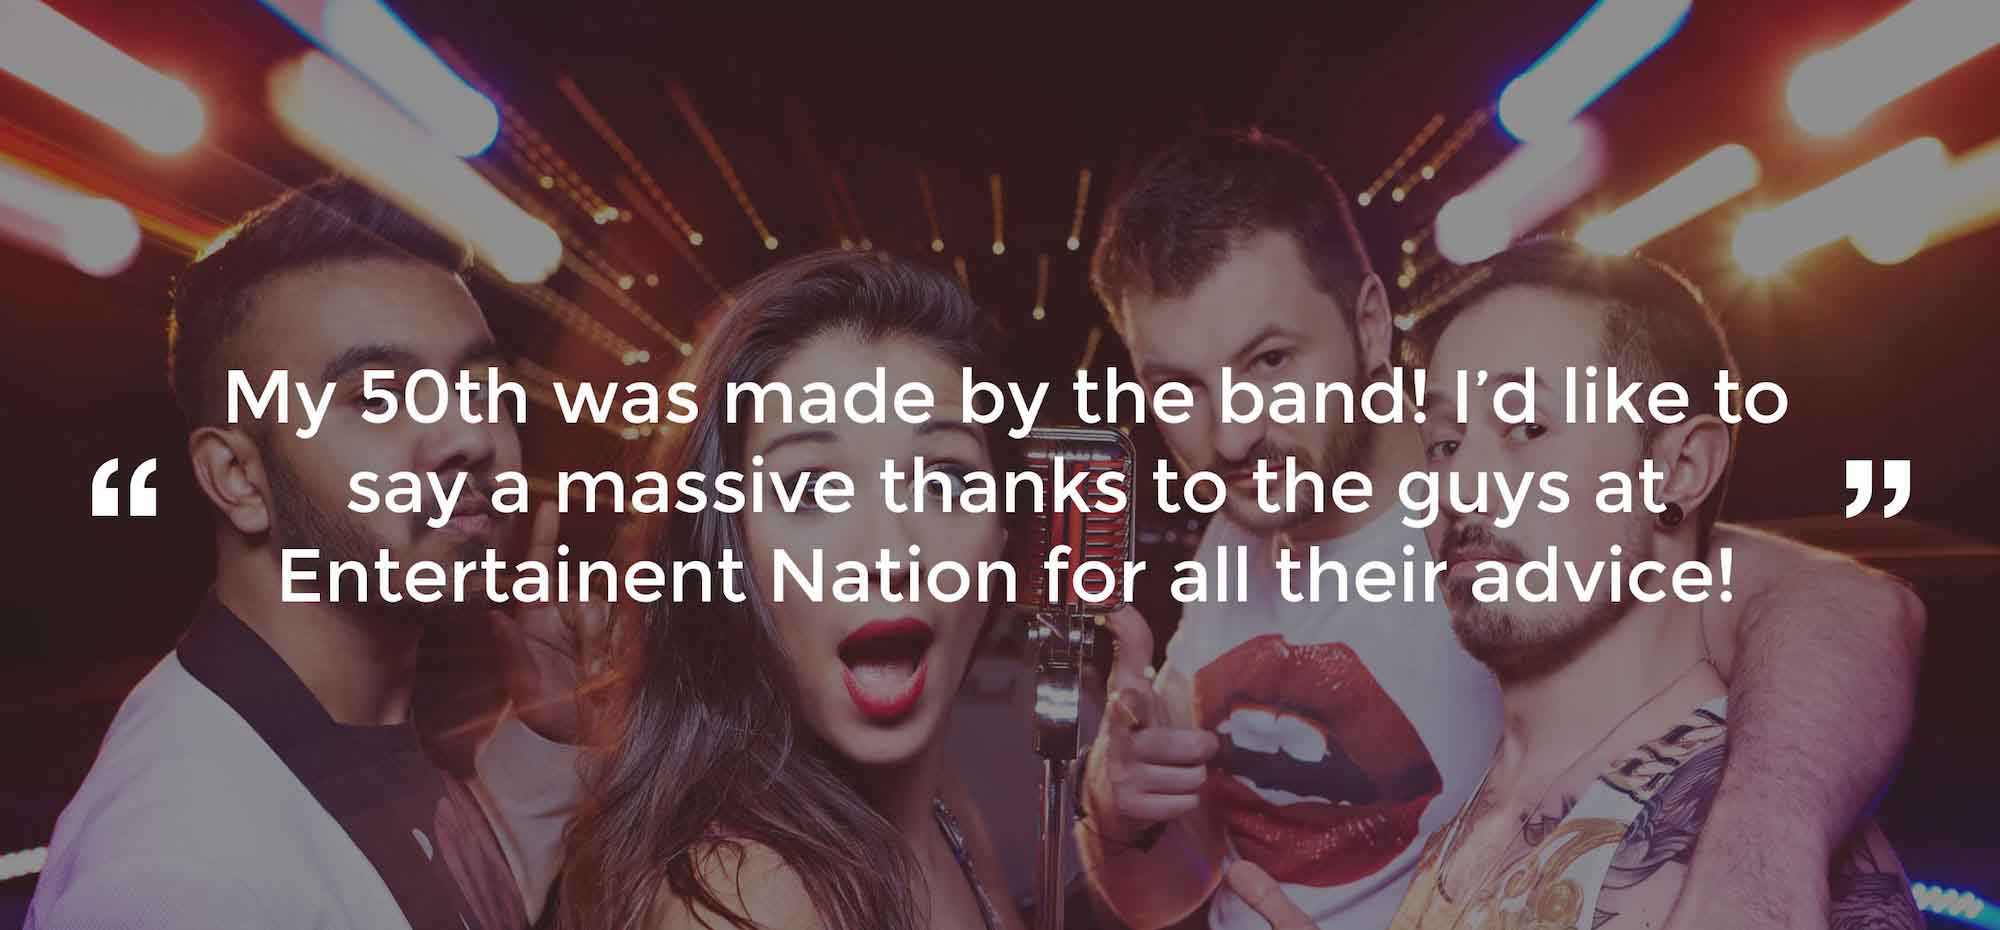 Client Review of a Party Band South Glamorgan